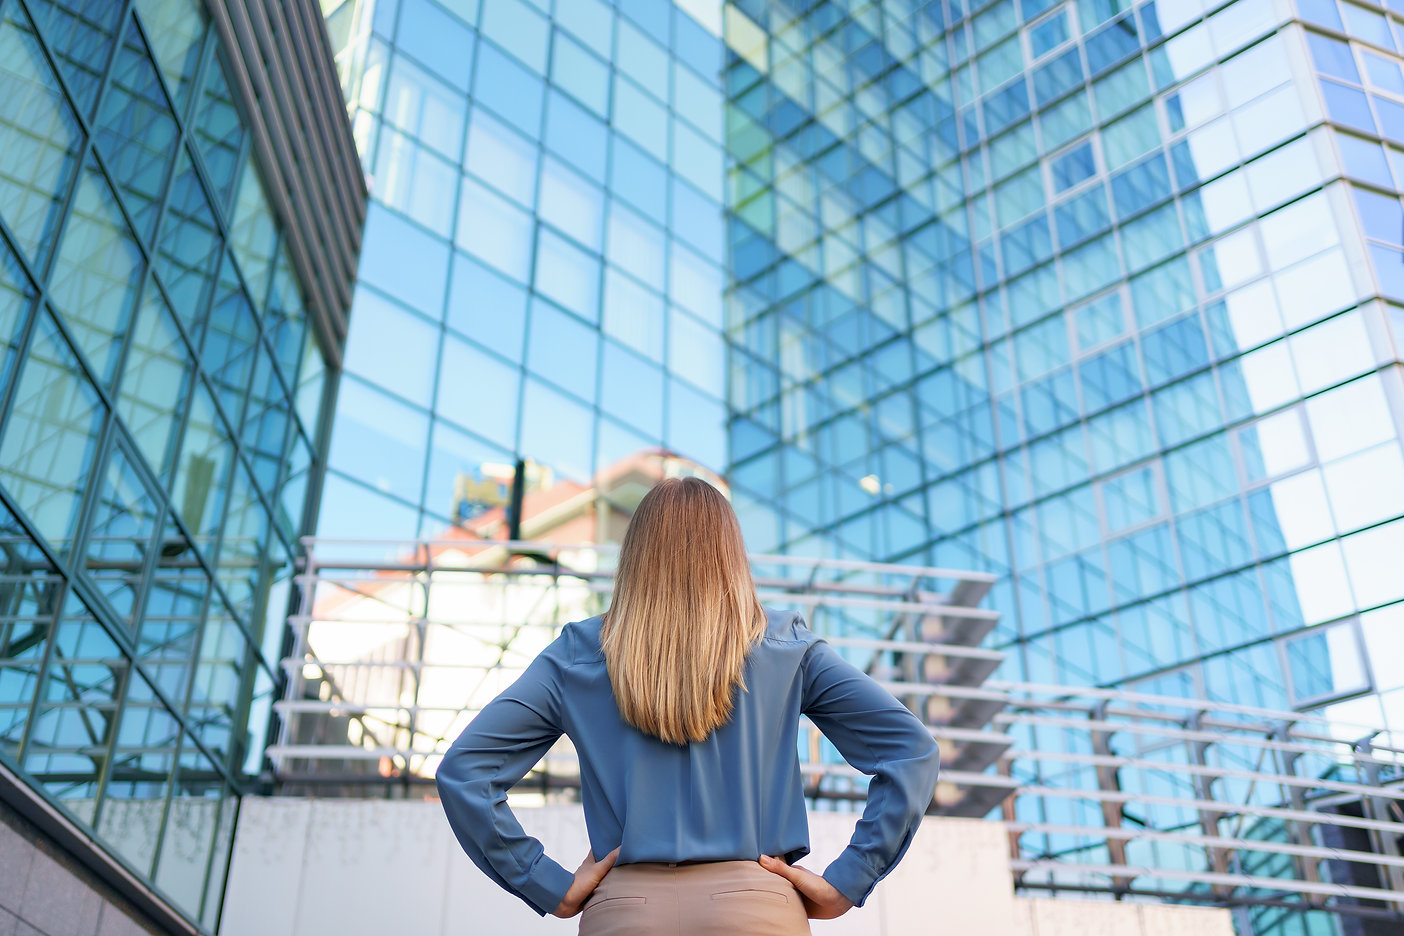 back-view-woman-looking-business-buildin